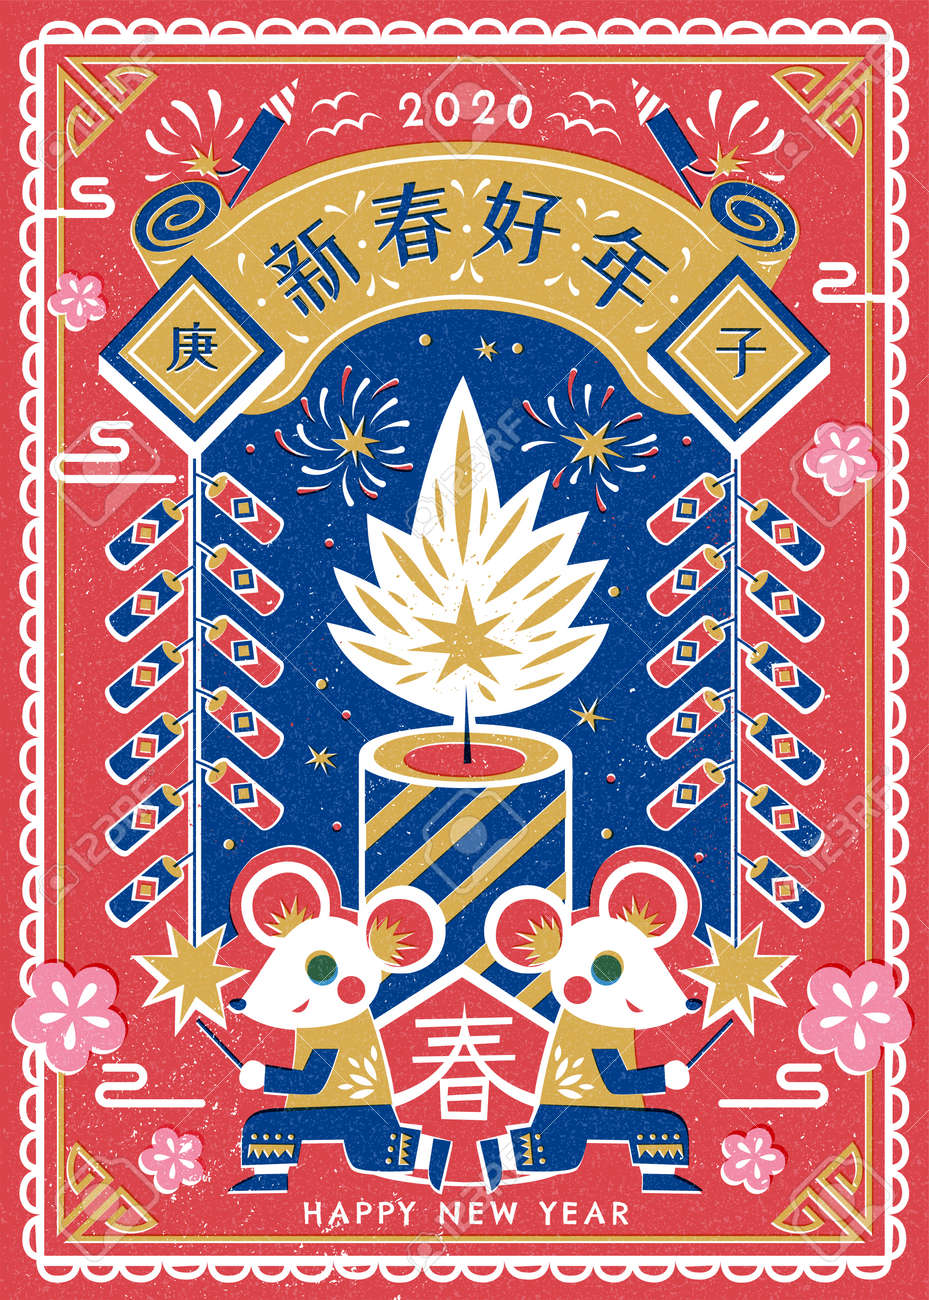 Screen printing white mice lighting firecrackers for lunar year, Chinese text translation: Happy new year, spring and ancient china ordinals - 135641413